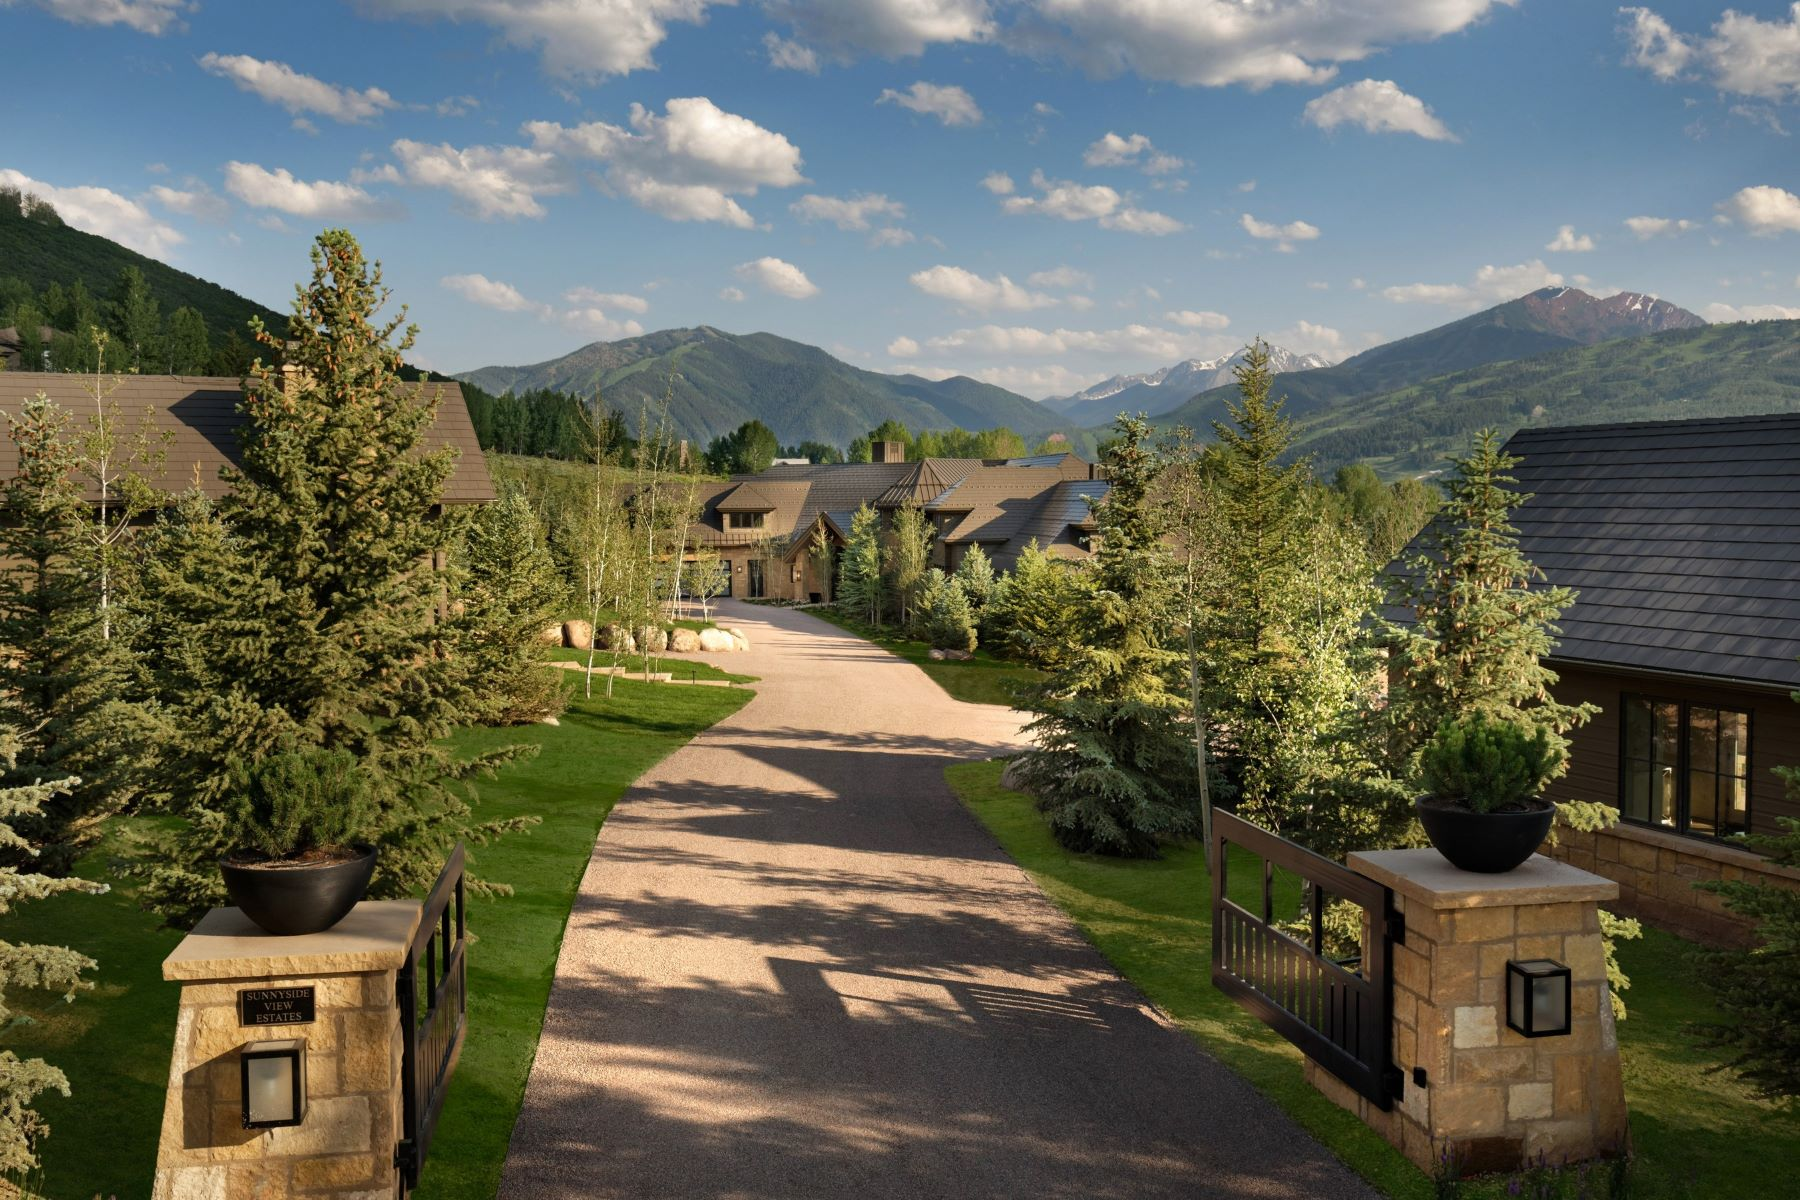 Single Family Homes for Active at Sunnyside View Estate 61 Sunnyside Way Aspen, Colorado 81611 United States